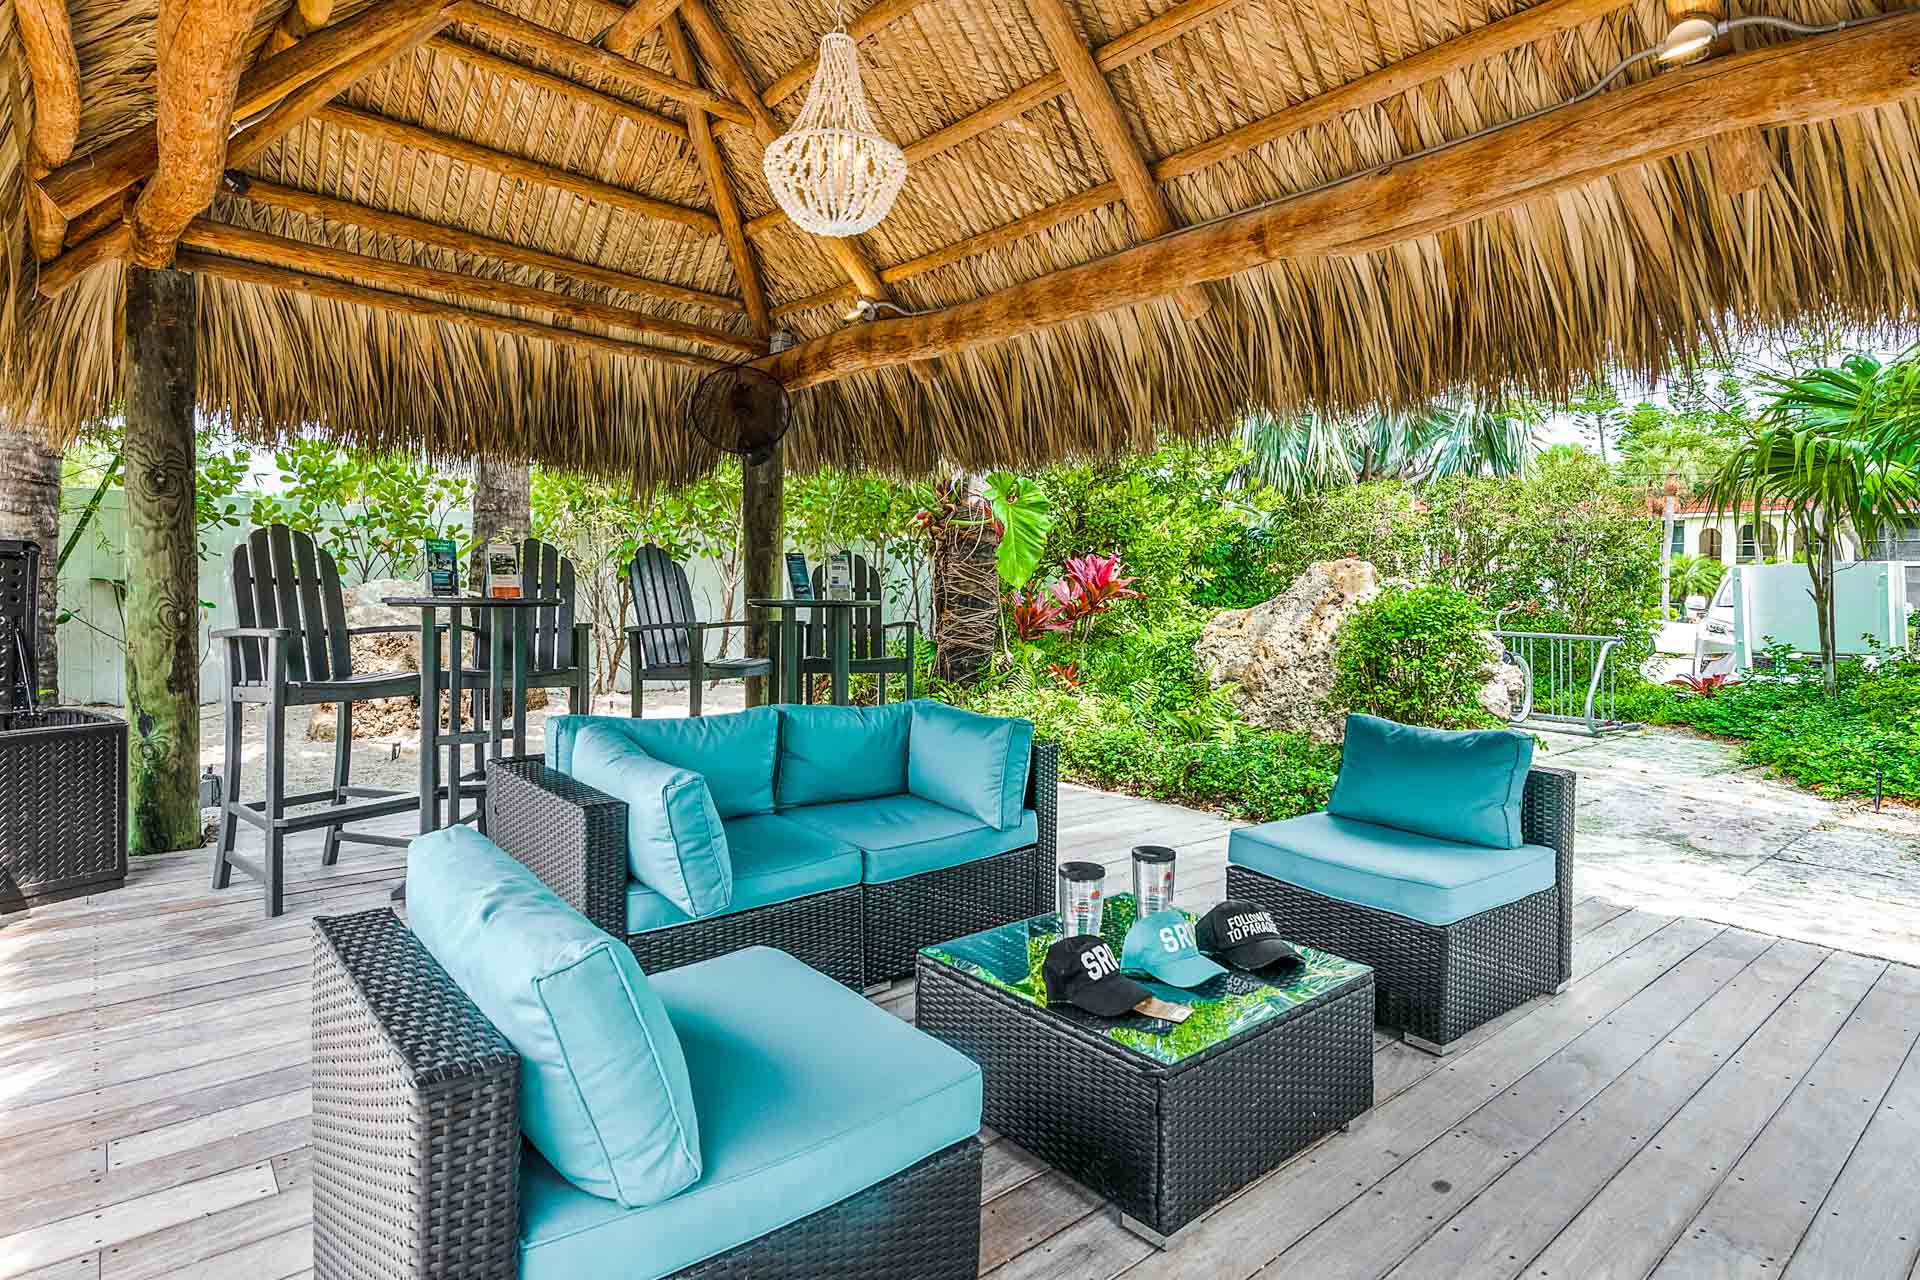 Adventure Tiki Area - Just Relax Here or Plan an Excursion